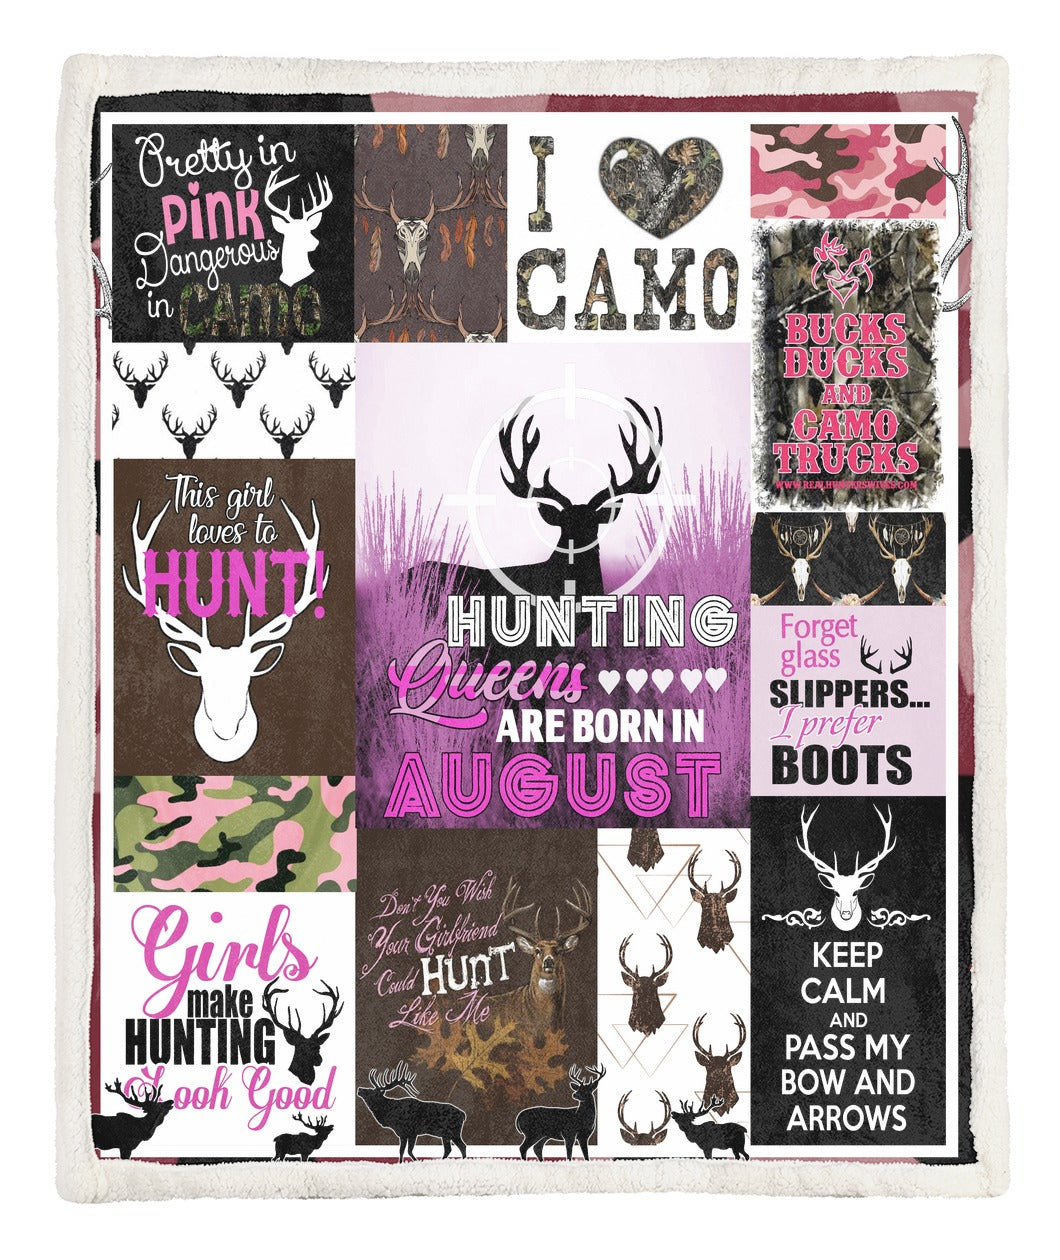 august-girls-hunting-throw-blanket-tabpn522sa12302020